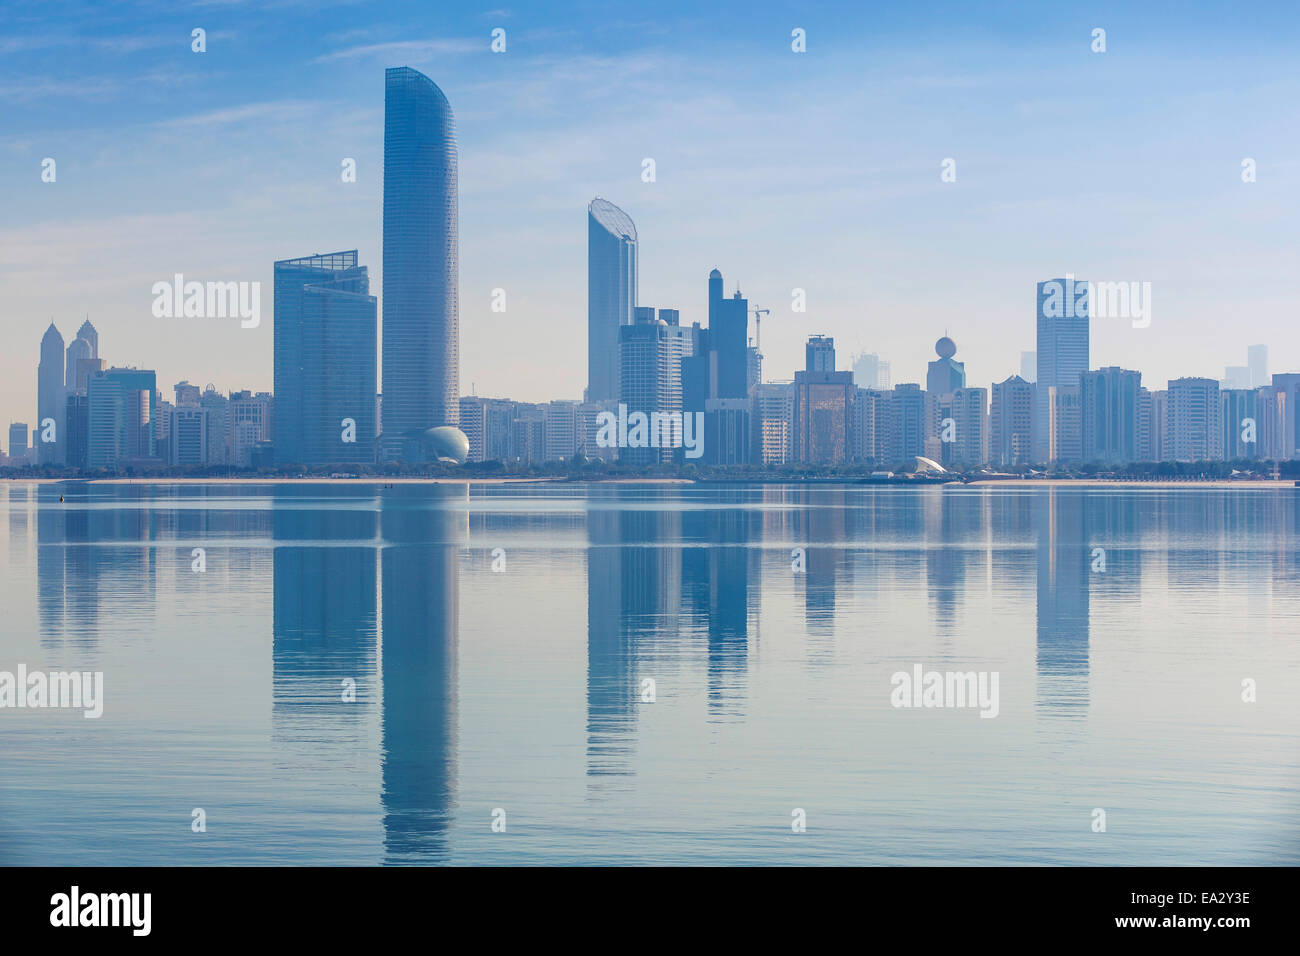 View of City skyline reflecting in Persian Gulf, Abu Dhabi, United Arab Emirates, Middle East - Stock Image